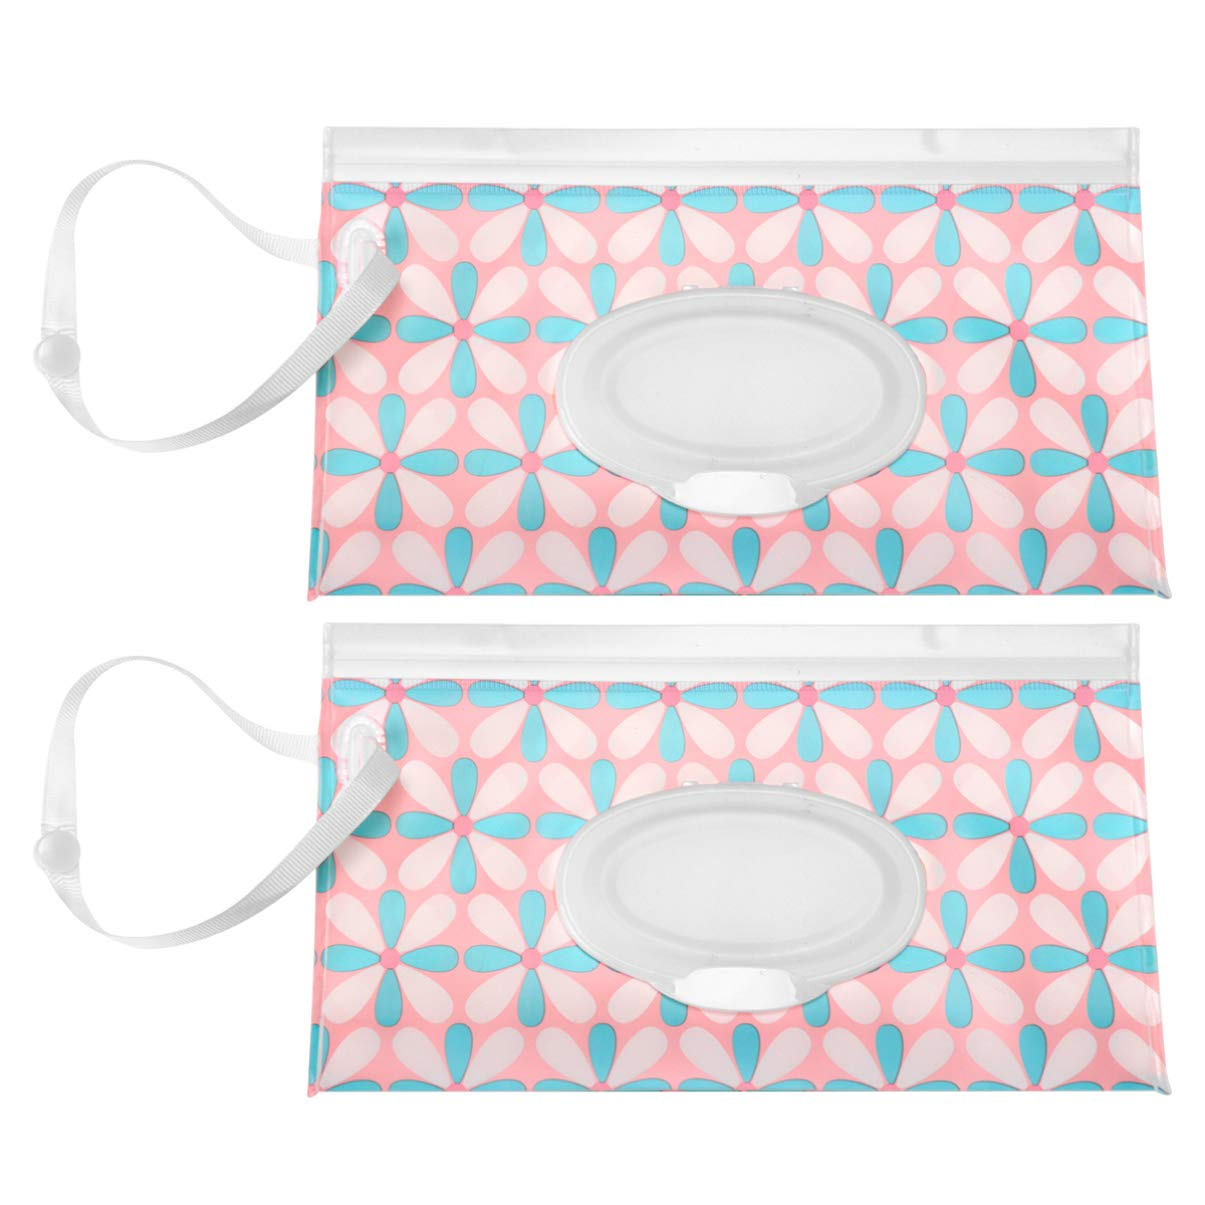 Blue Flowers Artibetter 2pcs Wipe Pouches Reusable Wet Wipe Pouch Flip Top Portable Case Travel Clutch Holder Refillable Baby Wipes Dispenser for Outdoor Office School